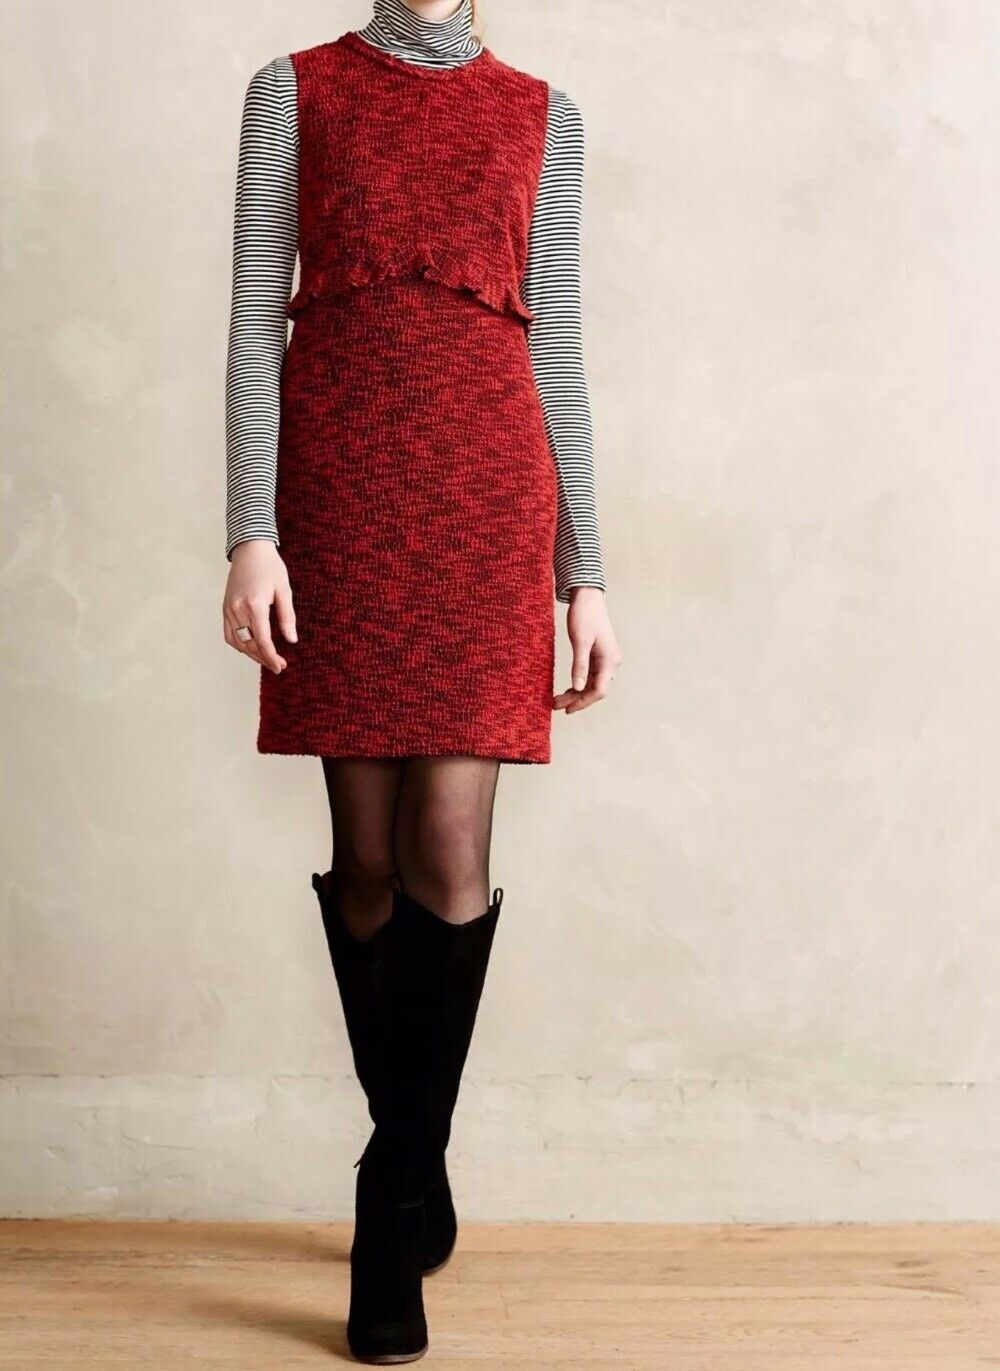 NEW Anthropologie Hi There Karen Walker Charlotte Boucle Boucle Boucle Sheath Dress Size 10 3ebfbc